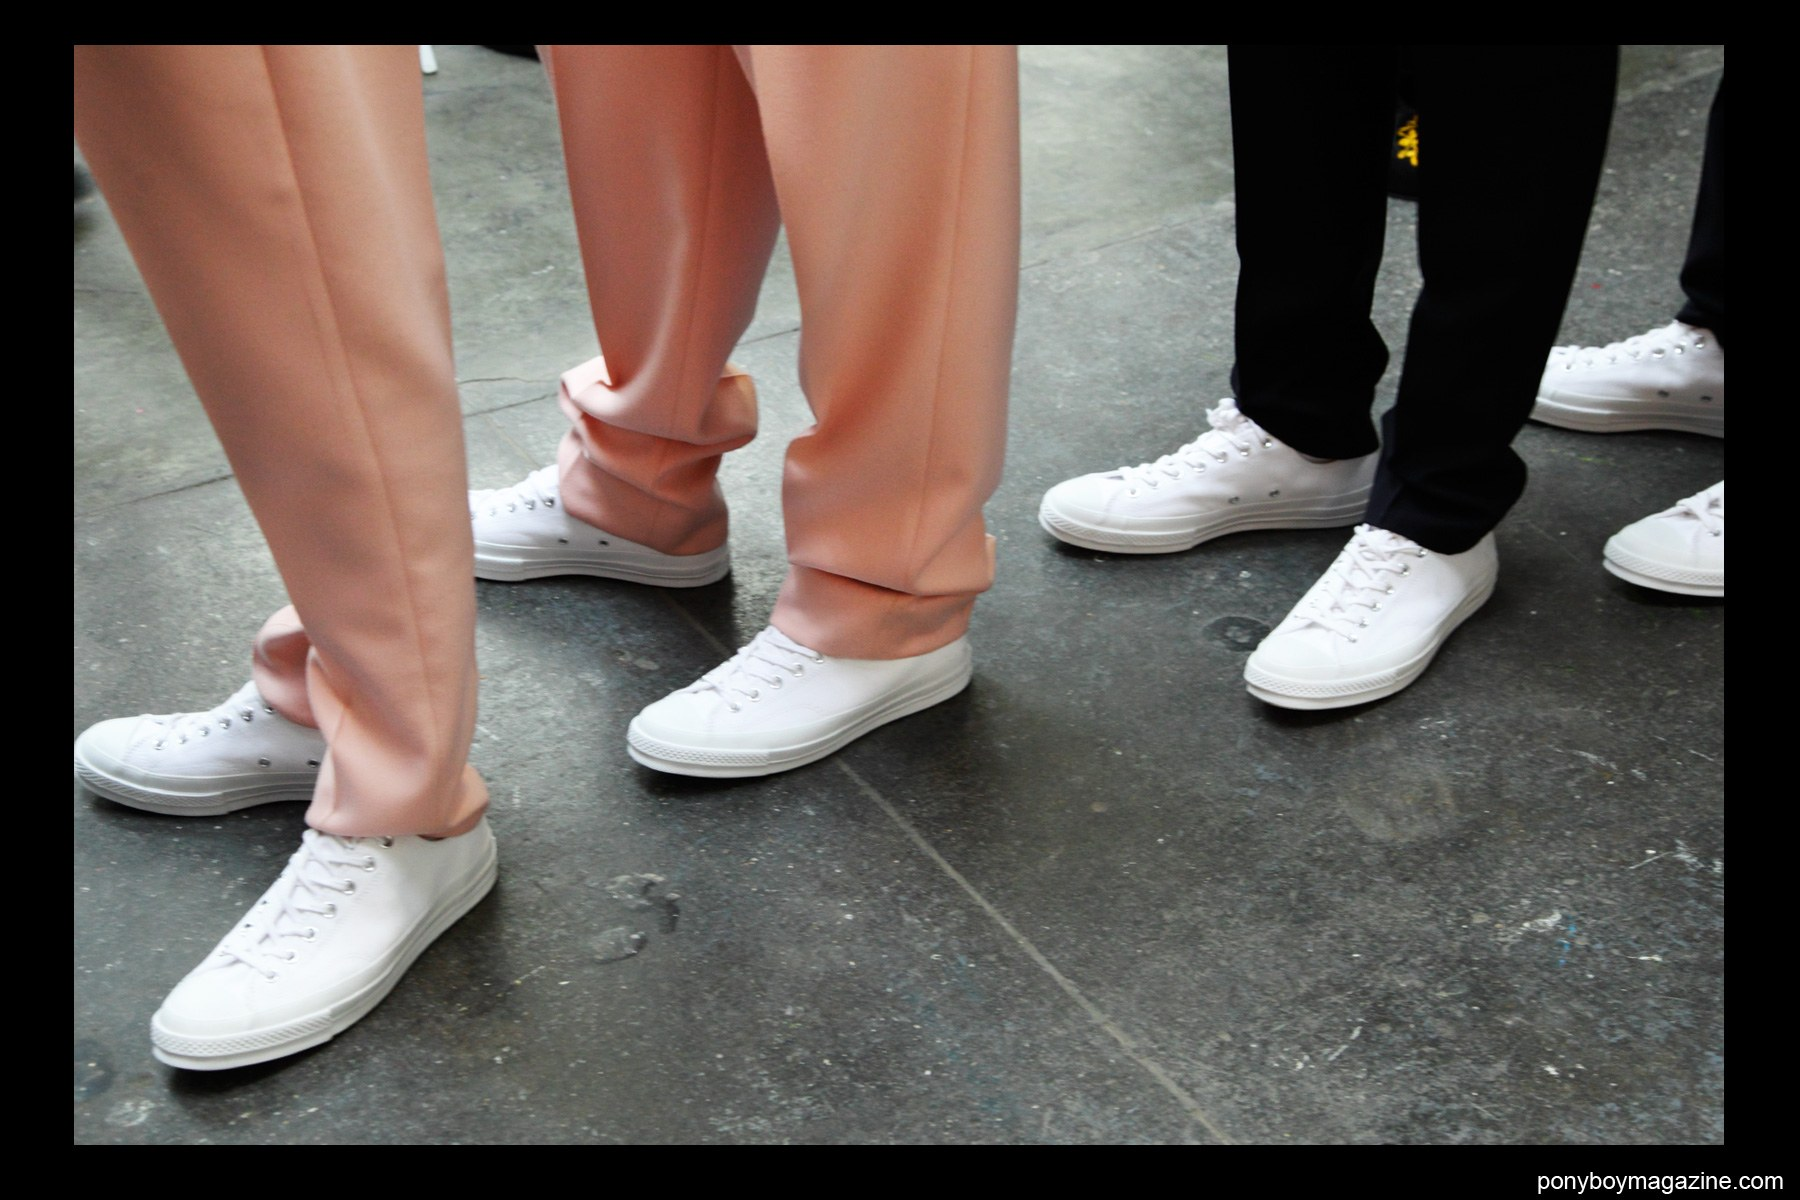 Models in Converse tennis shoes, backstage at Duckie Brown F/W15 show at Industria Studios. Photograph by Alexander Thompson for Ponyboy magazine.